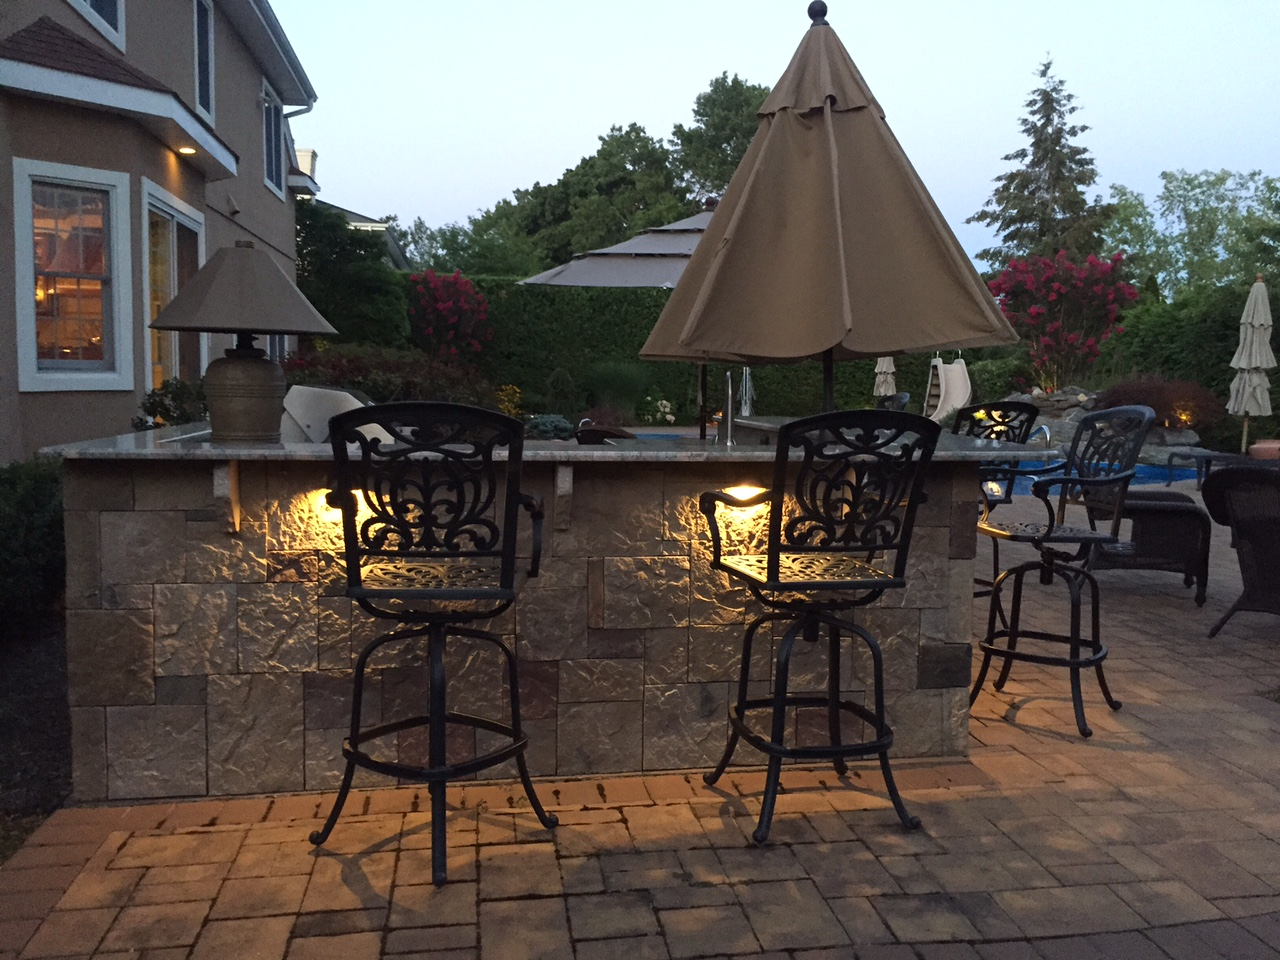 Outdoor lighting company lightscapes southern outdoor lighting - No Matter How Late You Like To Cook And Eat Louisville Outdoor Lighting Will Ensure Your Backyard Barbecue Goes Off Without A Hitch